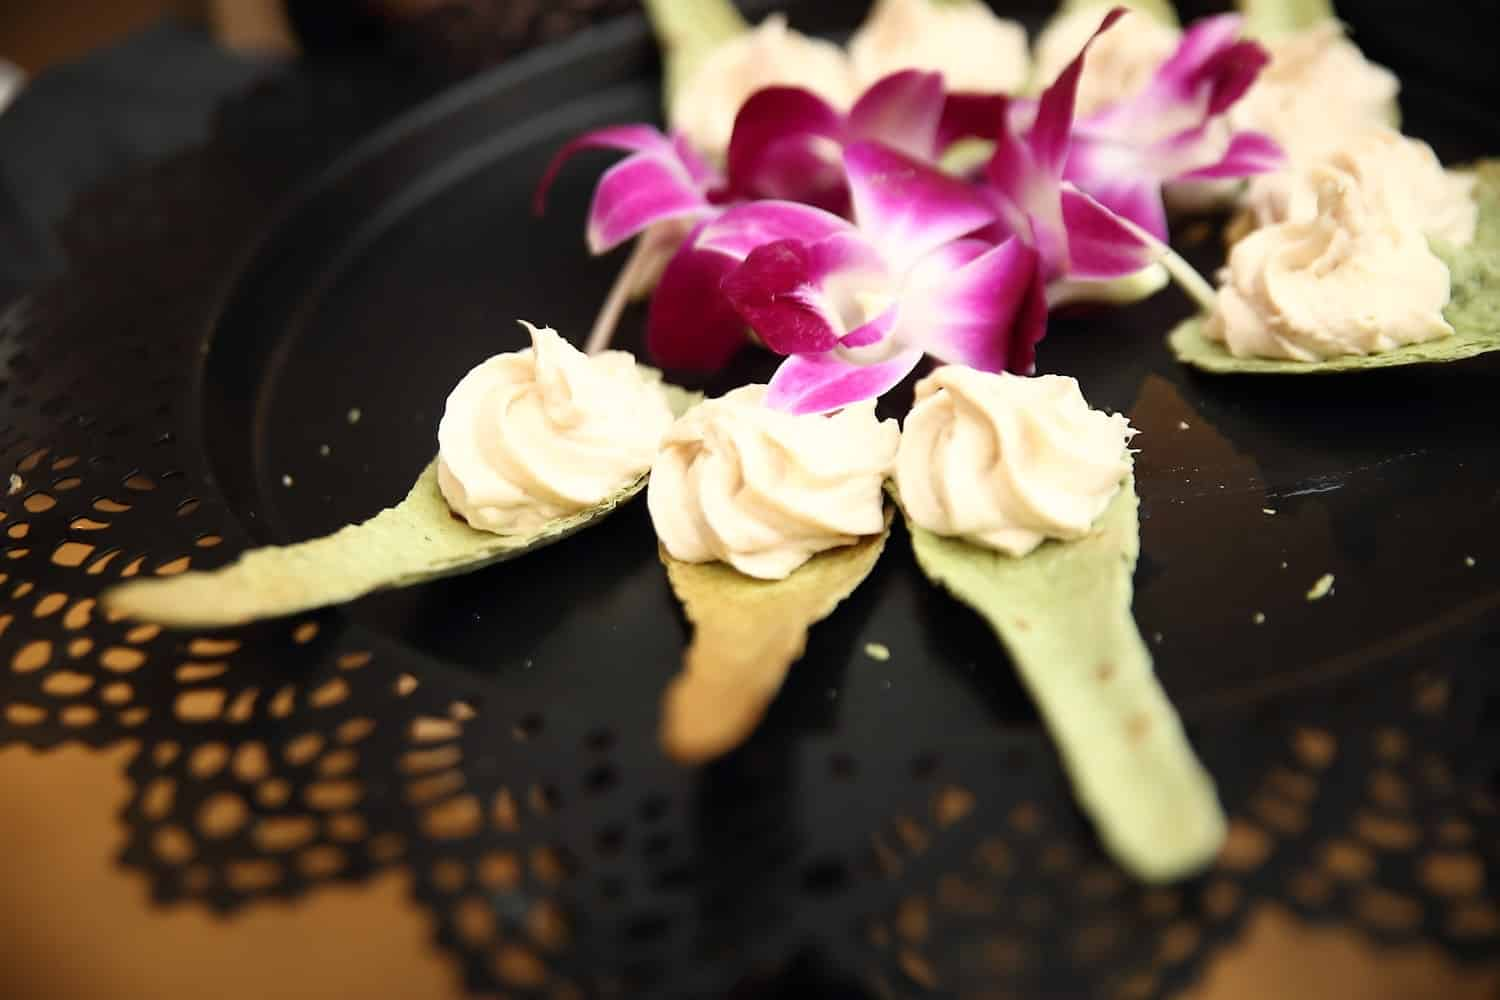 edible spoons by chef mark of dine catering of houston